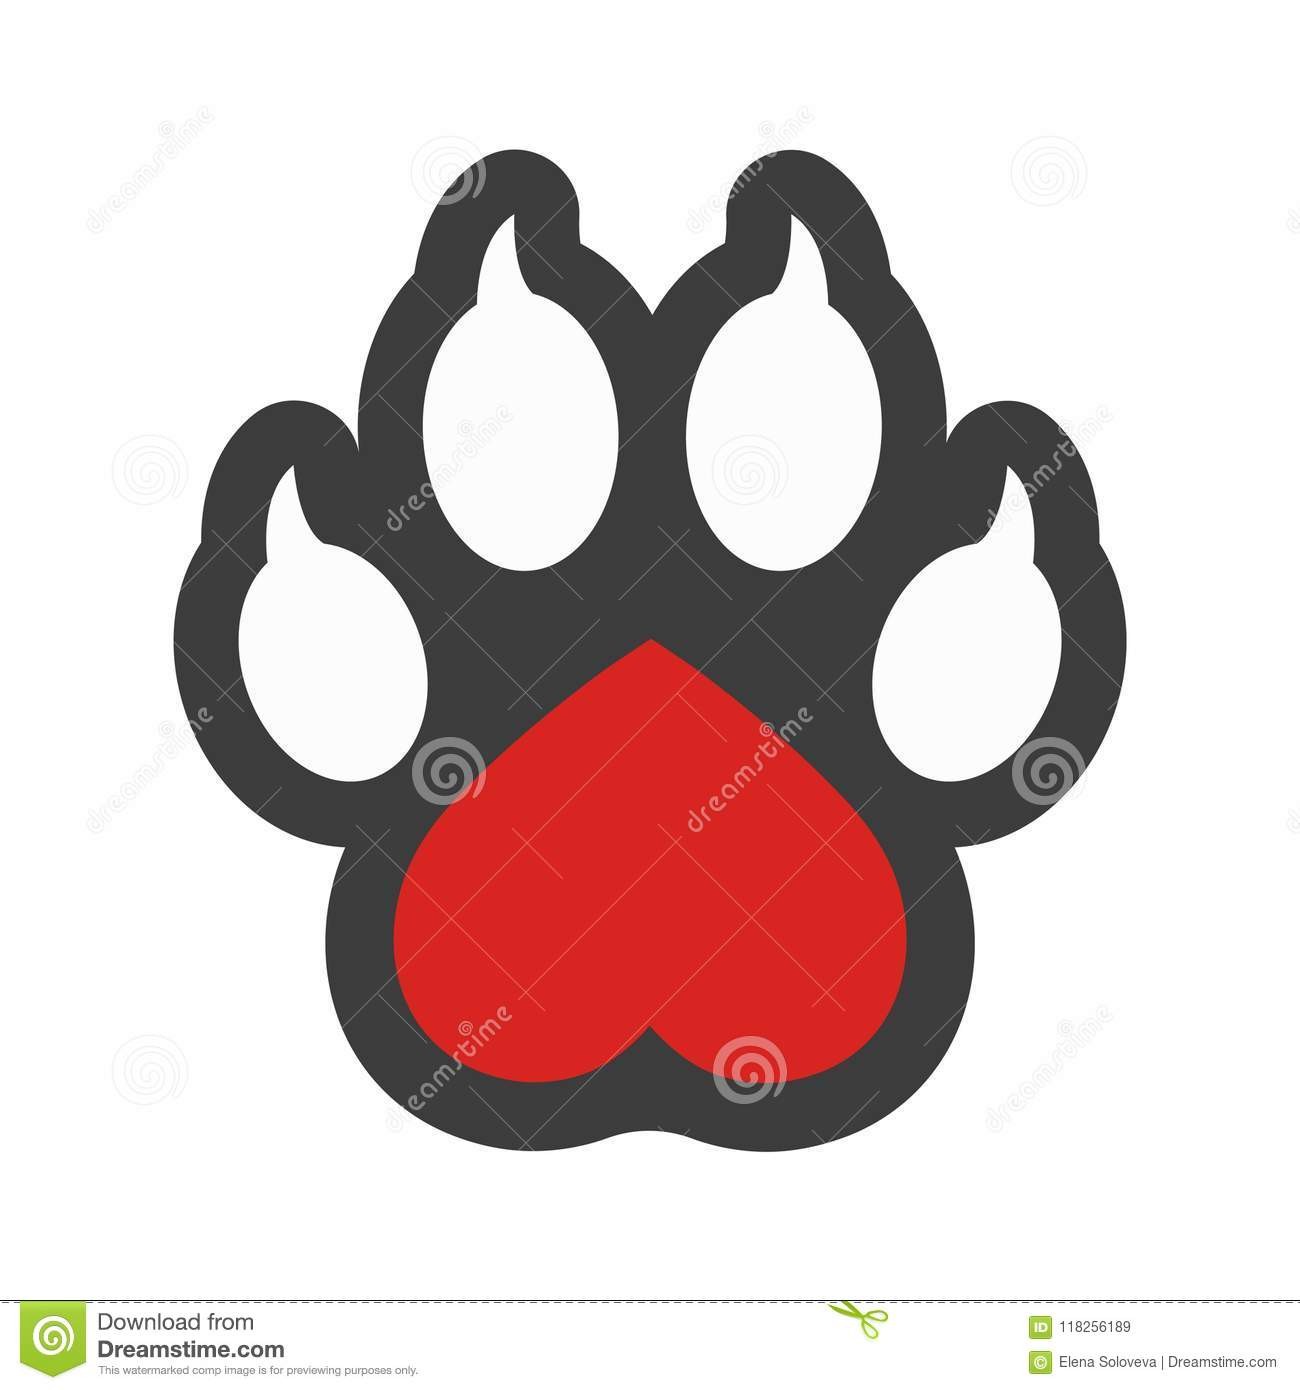 Veterinary Clinic Isolated Vector Logo Heart And Dog Paw Print